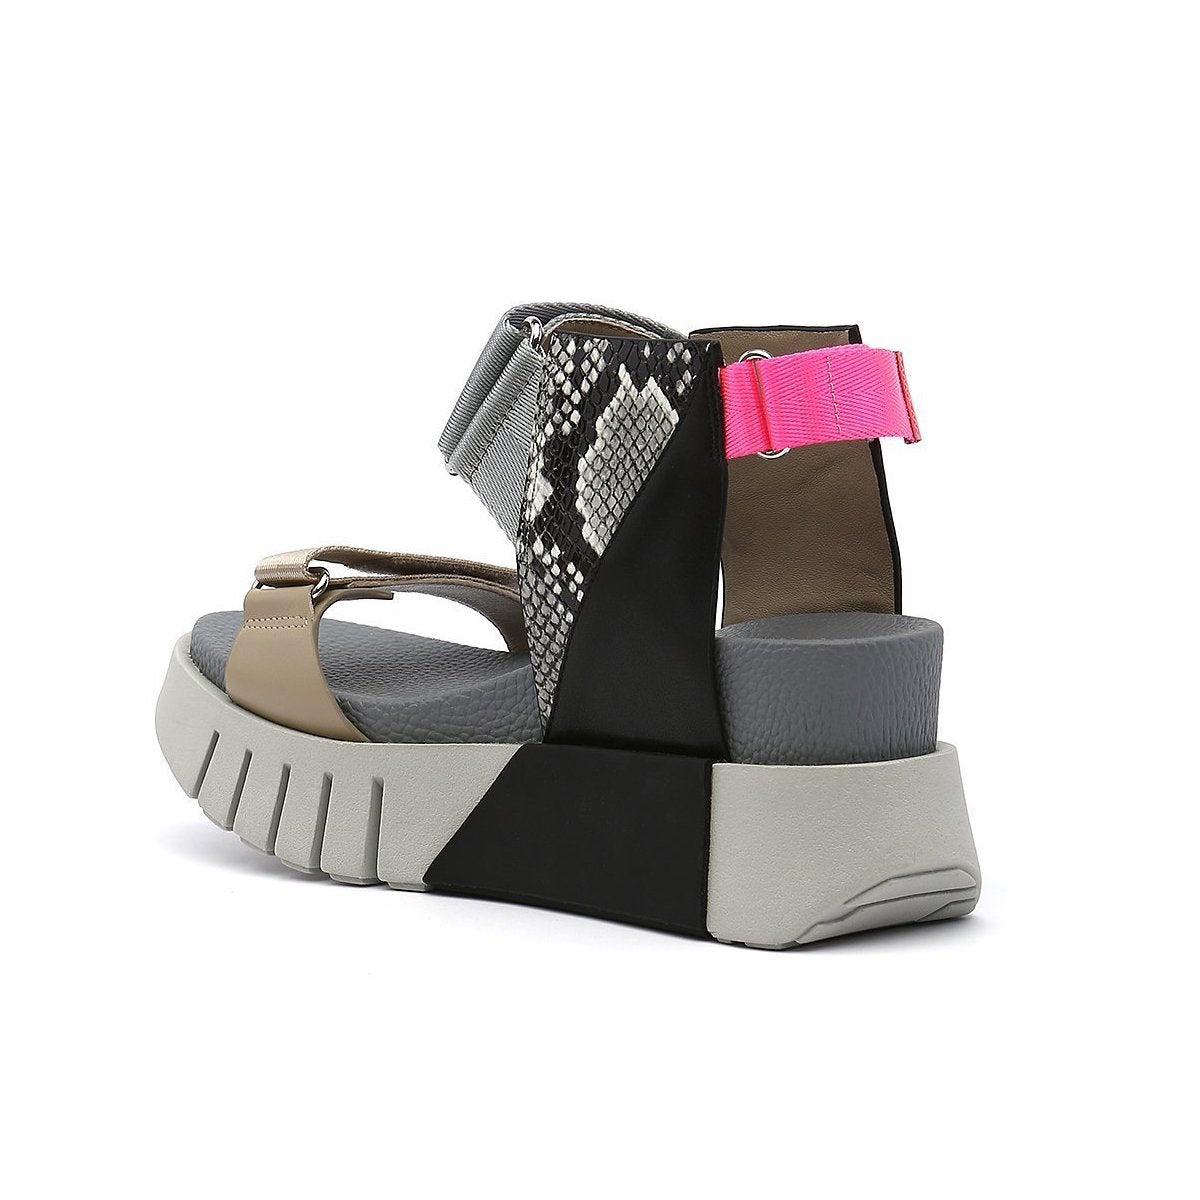 Inner back view of the united nude delta run sandal. This sandal is grey with gold, black, snake print, and a touch of hot pink. The sandal has a white platform sole and adjustable back, ankle, and toe bed straps.